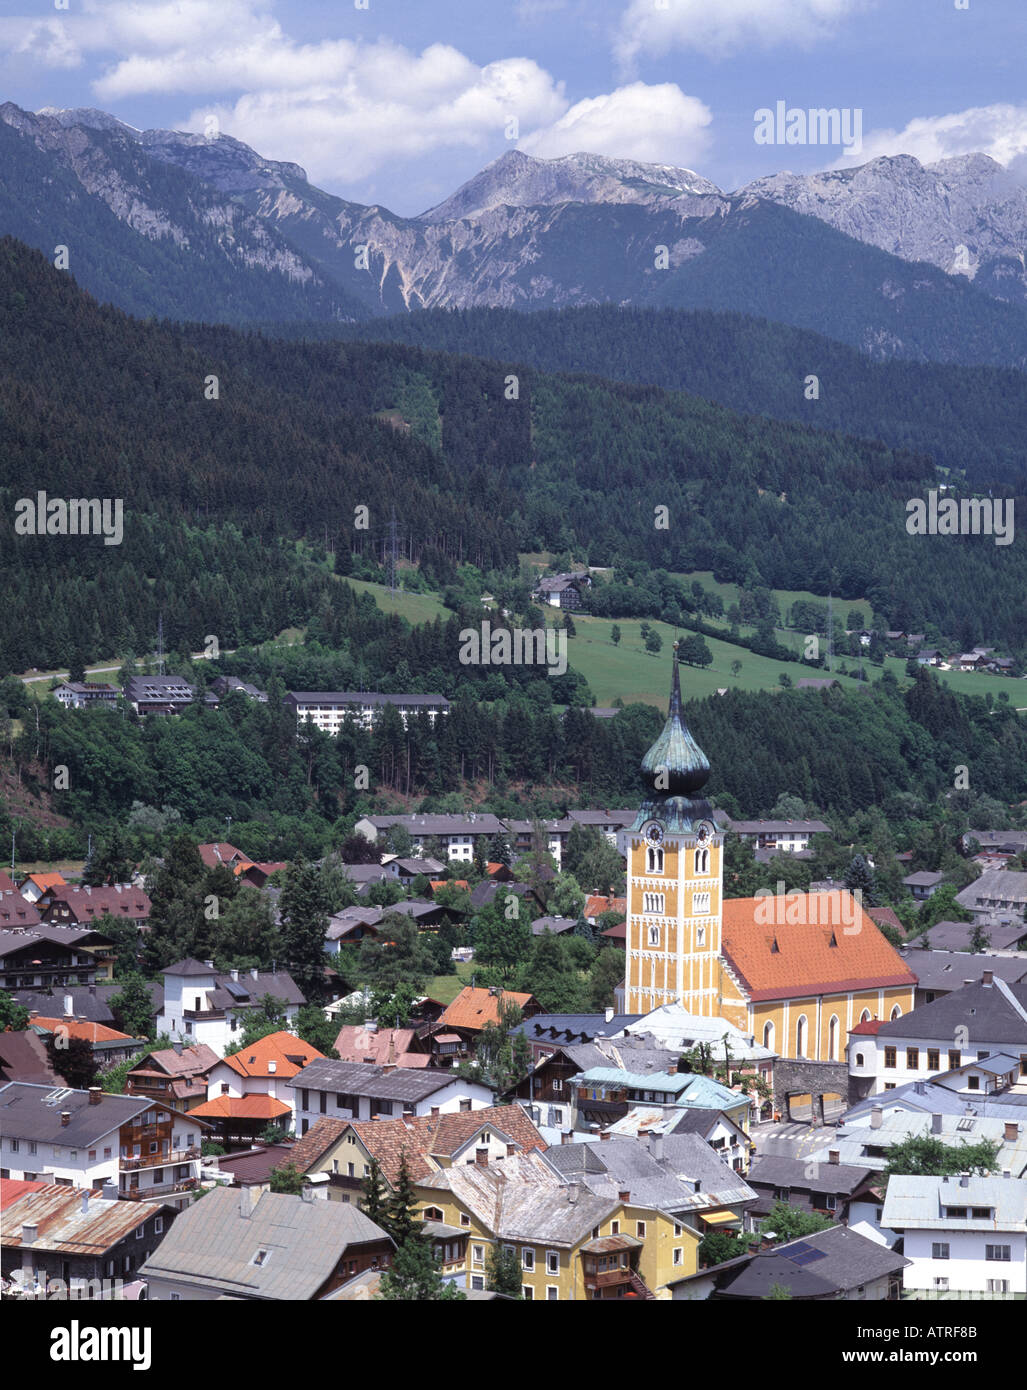 Austria Schladminger Tauern Town of Schladming and the Dachsteingruppe Alps Stock Photo